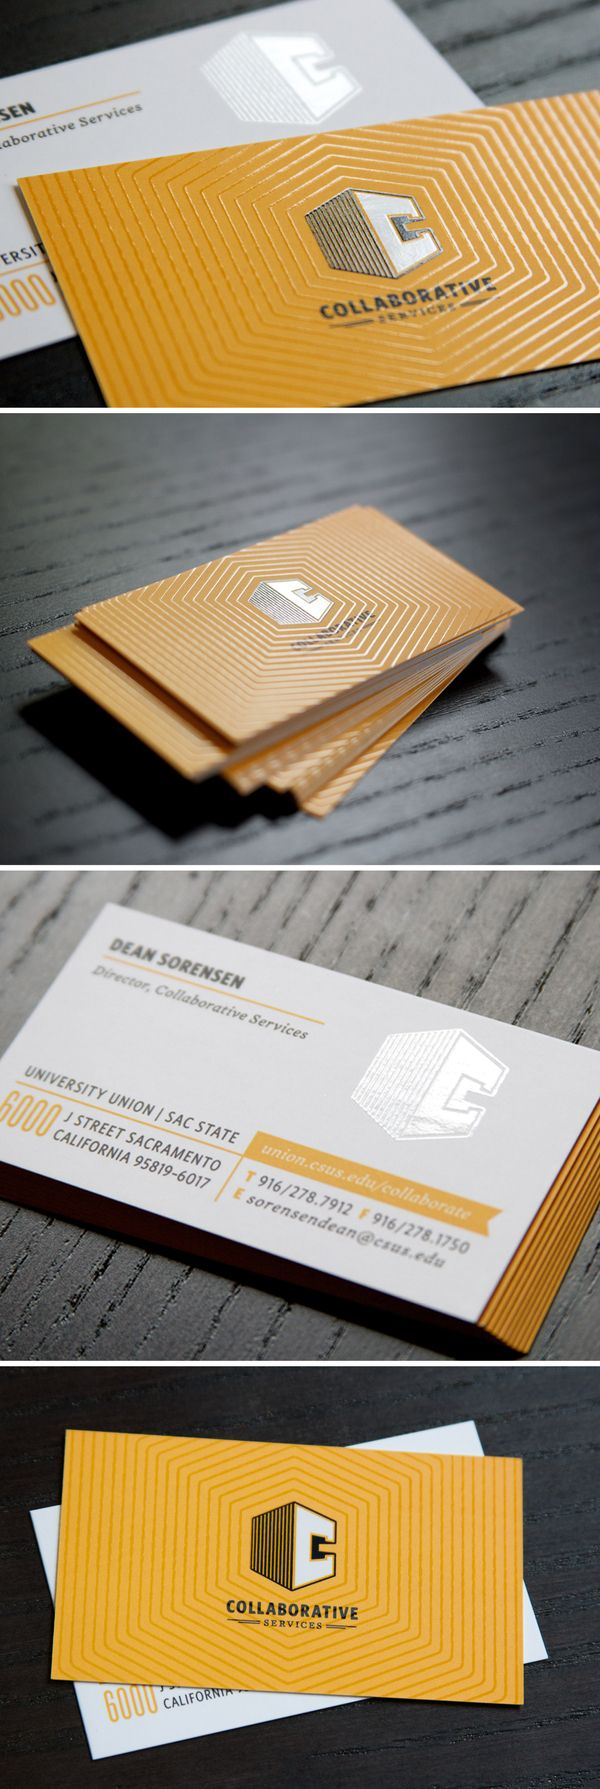 The 53 best business cards varnish images on pinterest business vip card spot varnish could be grill mark lines reheart Images